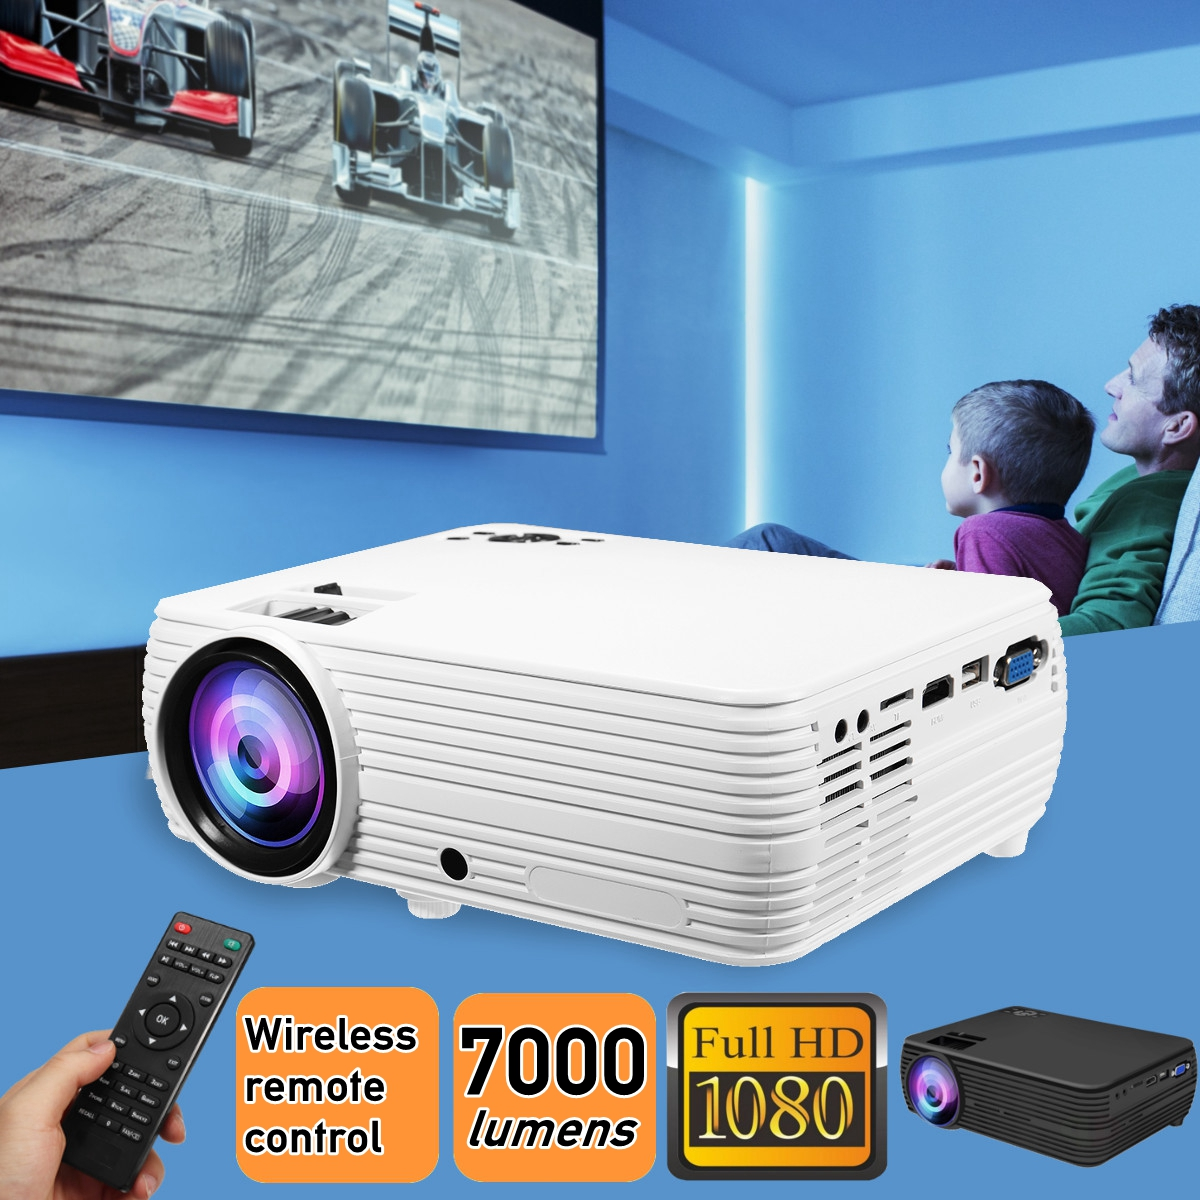 X5 Projector Home Cinema Theater Movie LED Proyector HD Projectors USB VGA HDMI AV TF Support 1080P 7000 Lumens стоимость